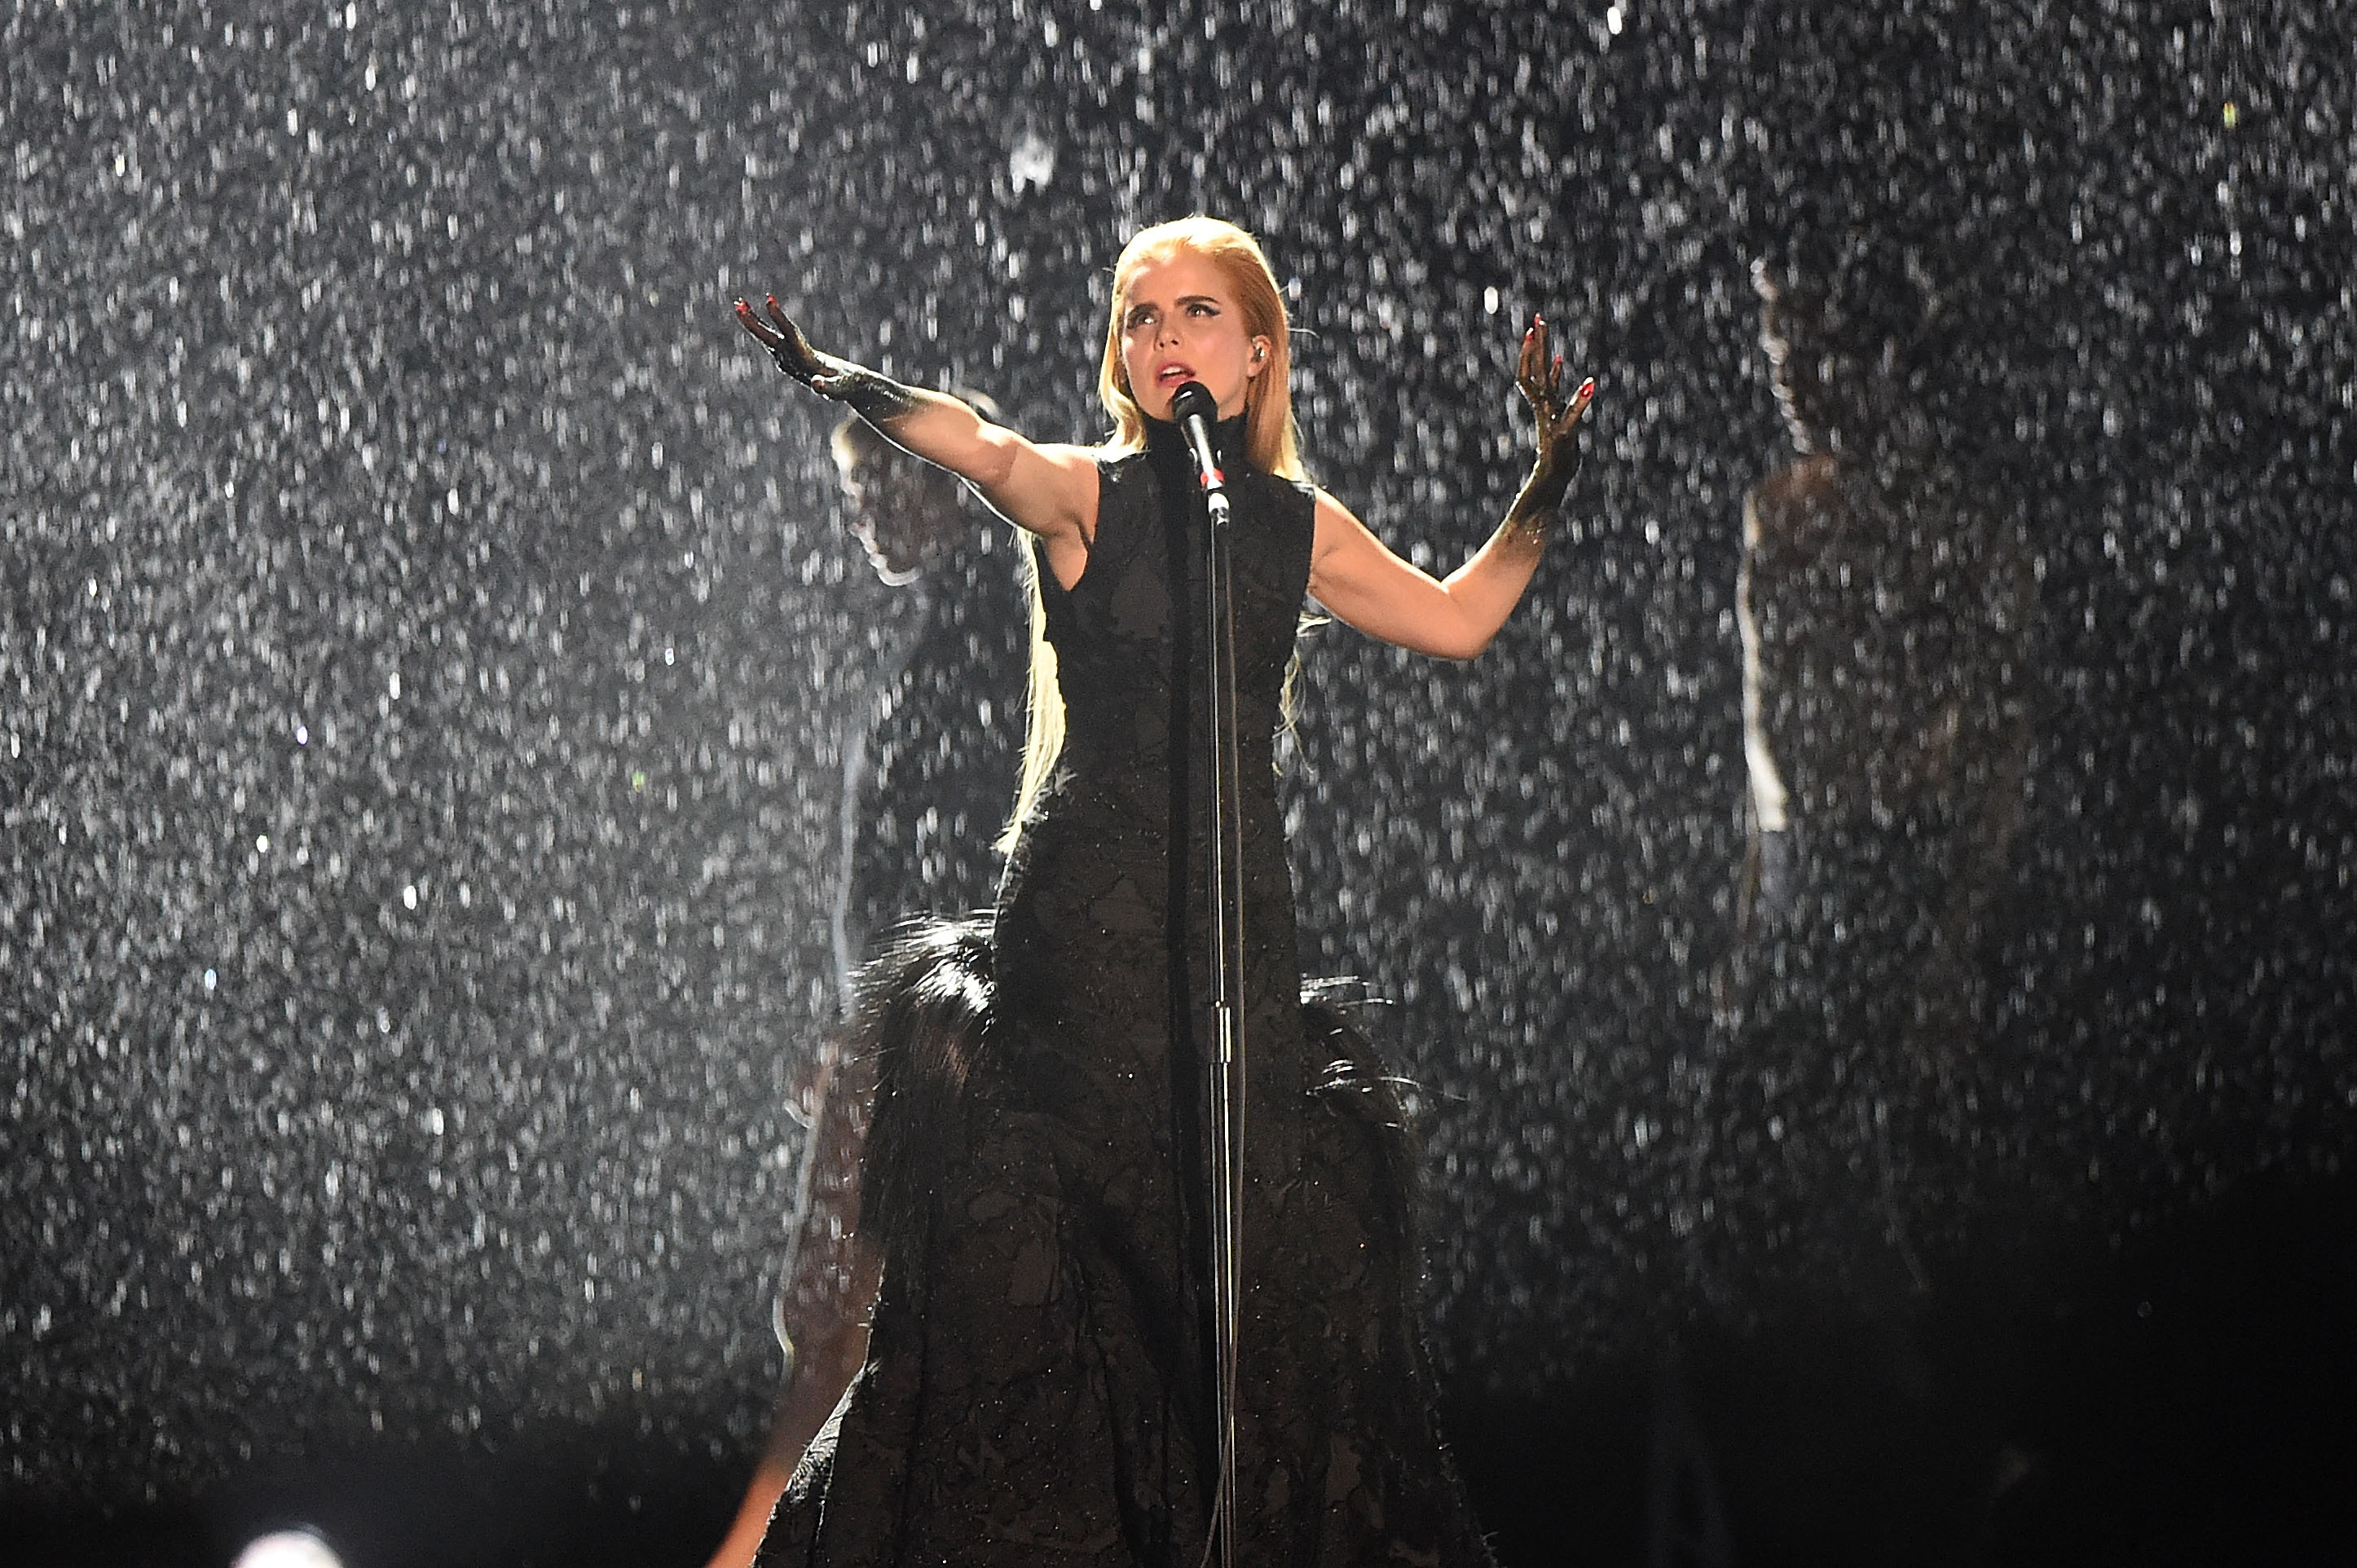 Paloma Faith BRIT Awards 2015 Performance